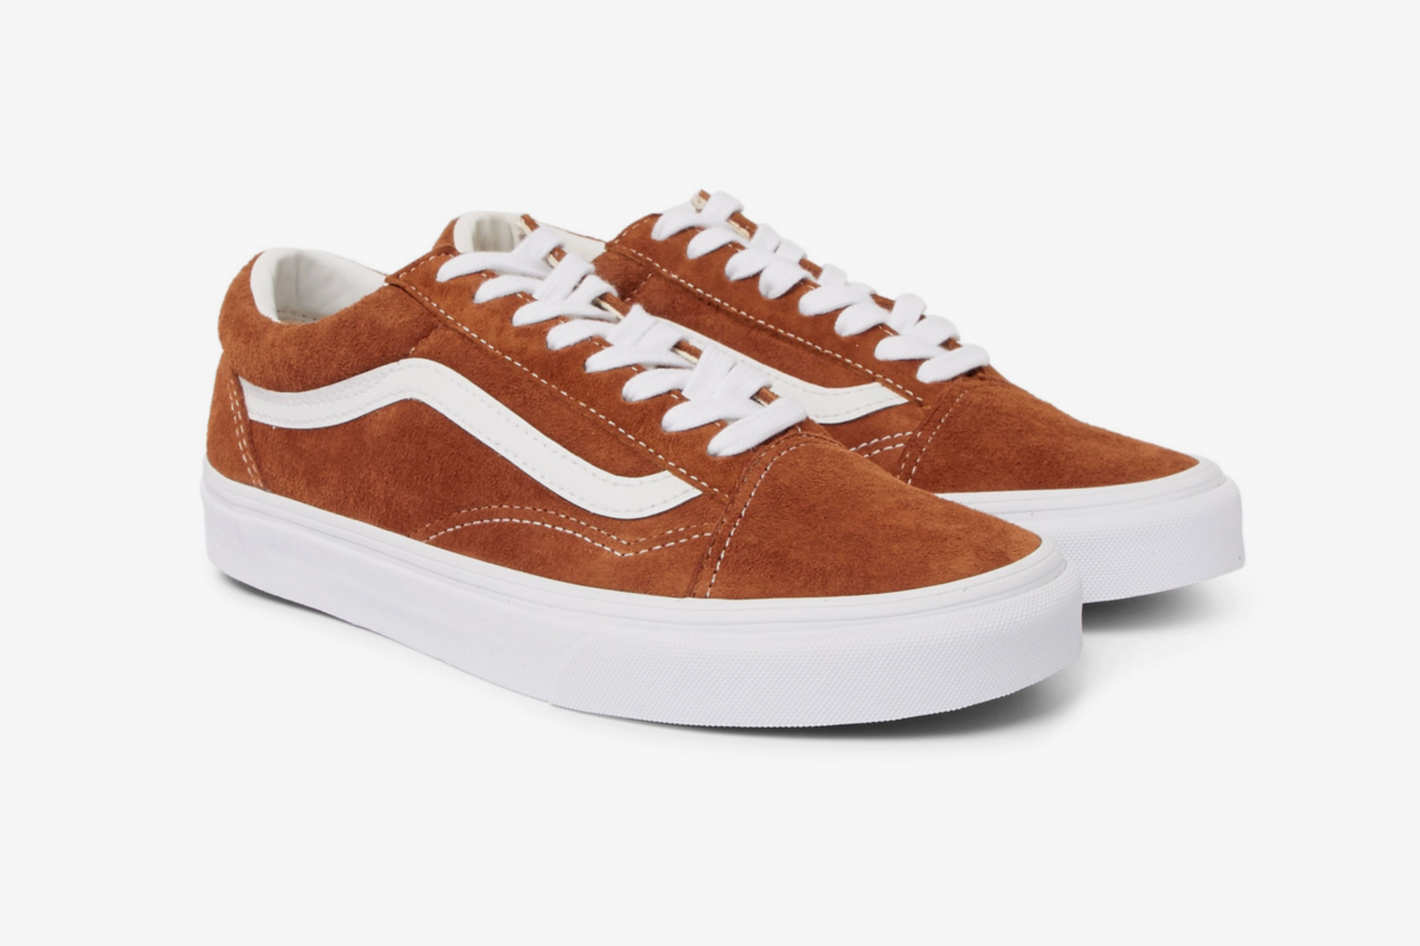 Vans Old Skool Leather-Trimmed Suede Sneakers